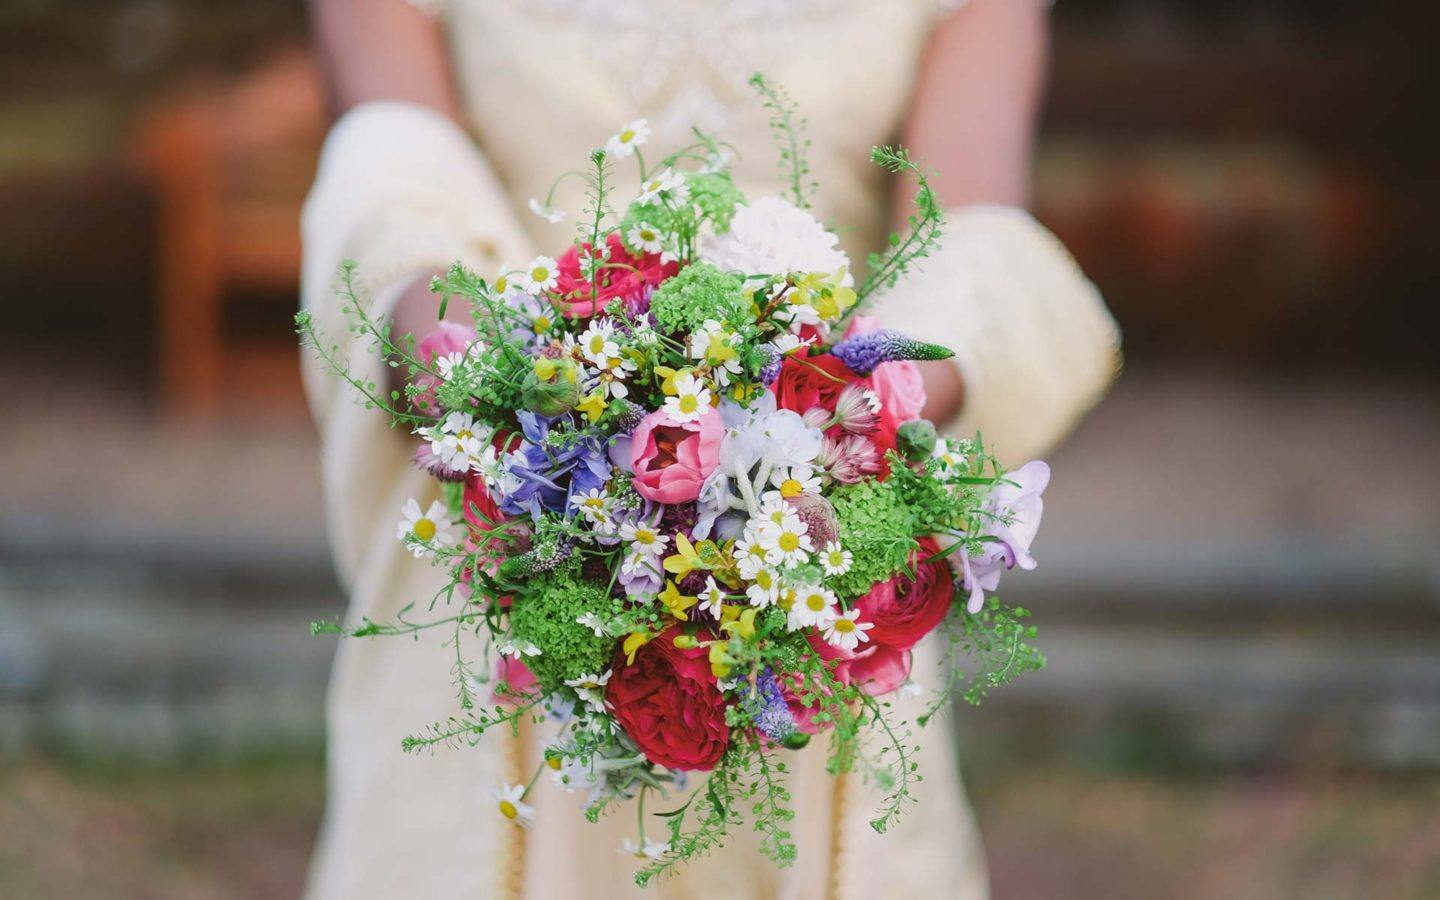 a close up photo of a bridal bouquet held by a bride